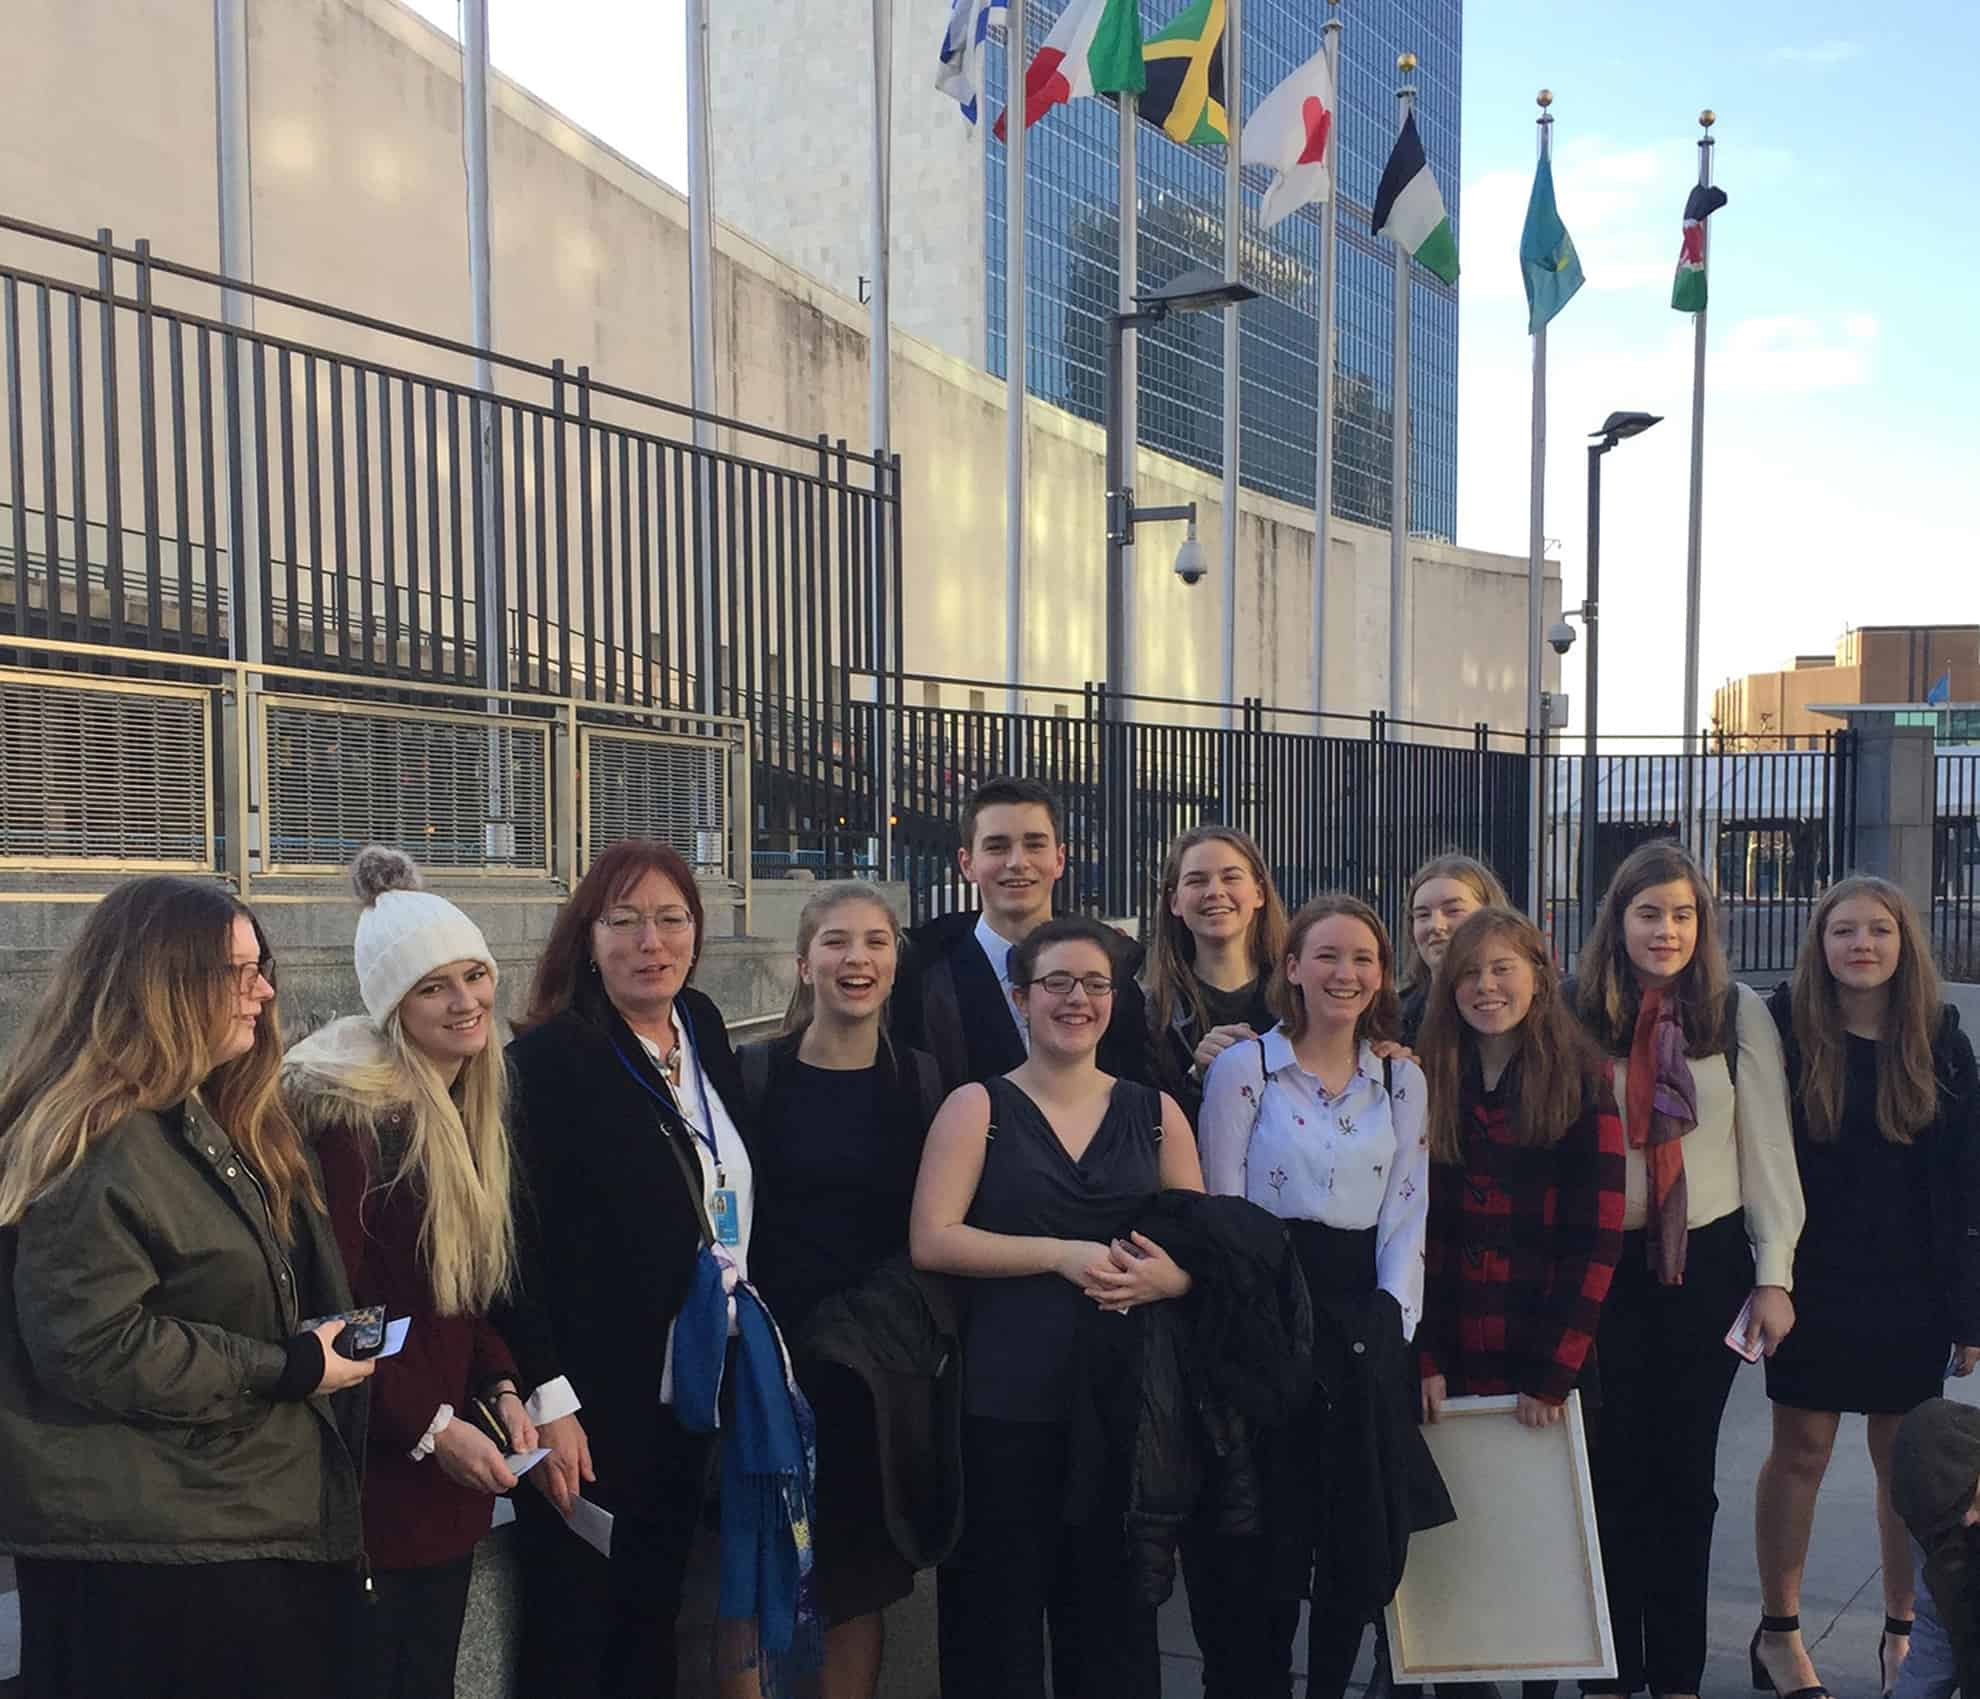 The Trumansburg team awaiting entrance to the UN prior to the final session of the Student Leadership Conference. Shown are (left to right) Arianna Wright, Zoe Golden, Gertrude Noden, Sarah Wertis, Logan Bonn, Georgia Mechalke, Jadyn Wright, Lilian Oxley, Margaret McCurdy, Virginia Clifford, Elizabeth Gardner, and Clair Williamson.